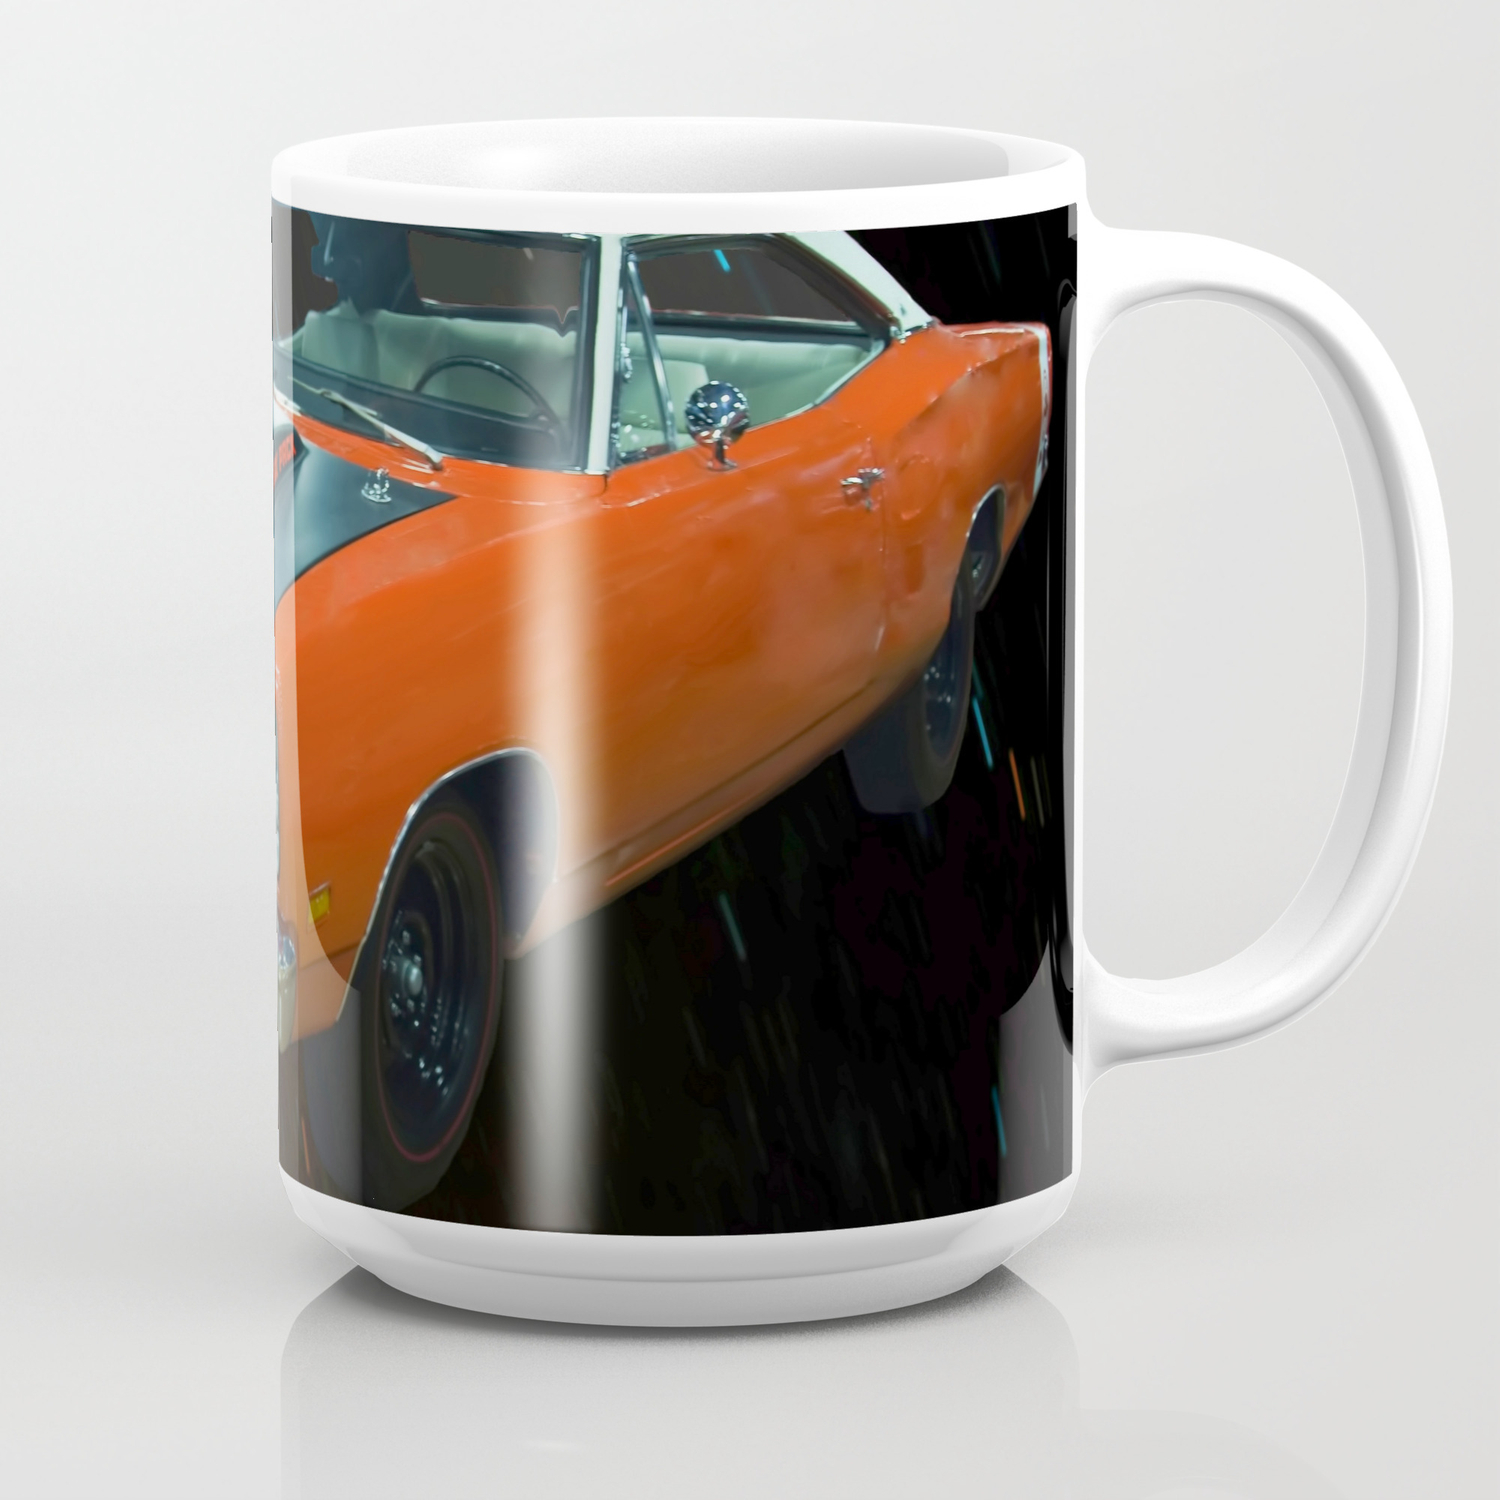 1969 1/2 Dodge Cornet A12 Superbee Coffee Mug